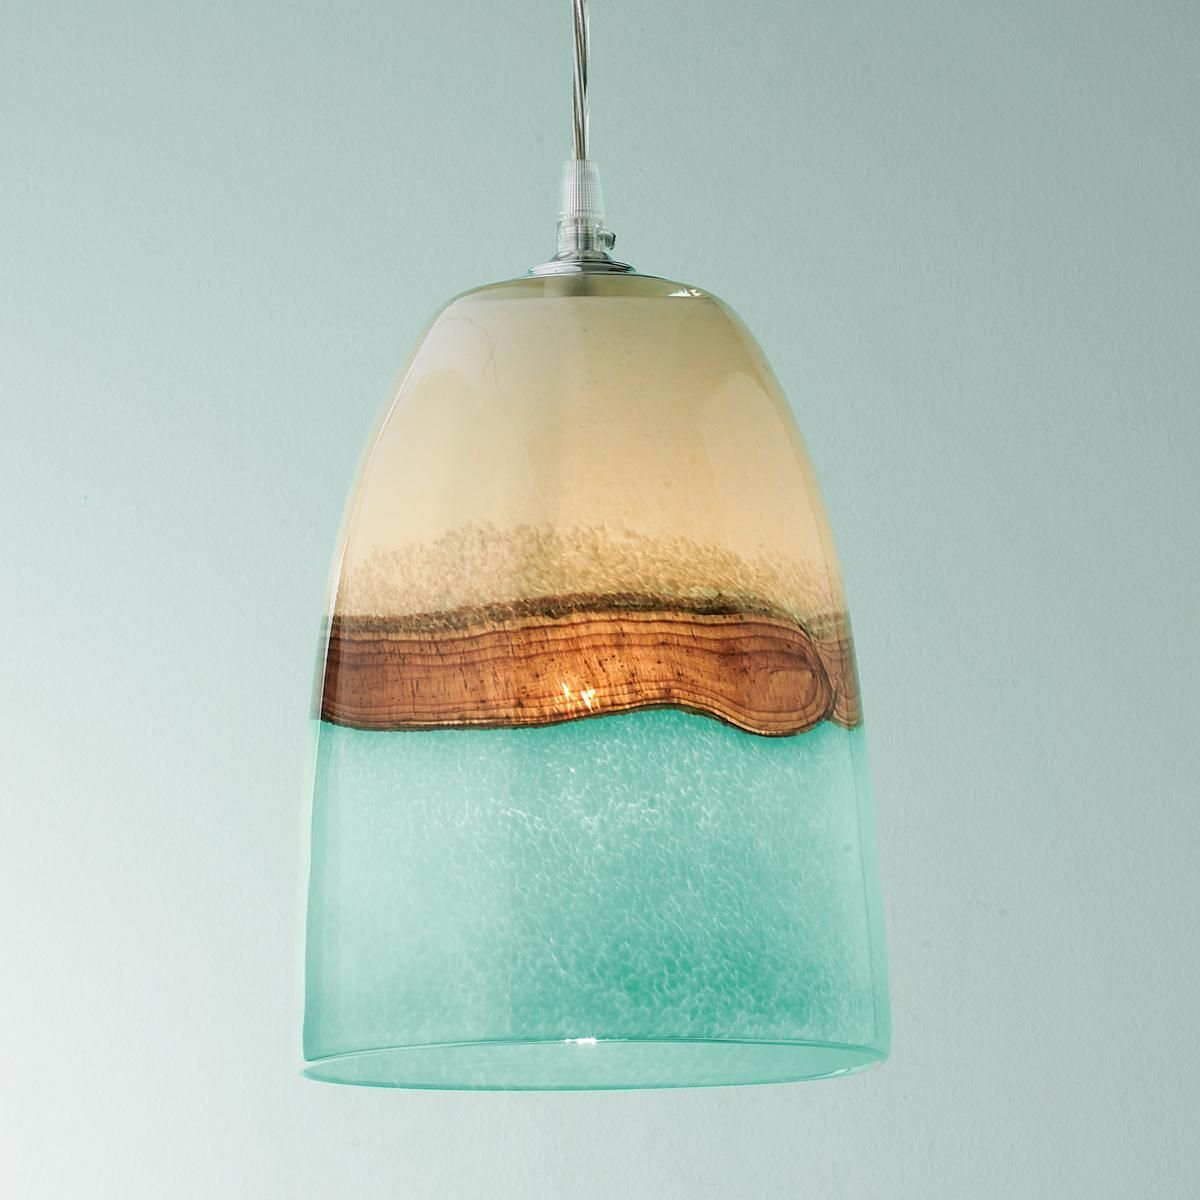 Strata art glass pendant light cream art glass pendants and strata art glass pendant light earth sea and clouds seem to unite in this brown aqua and cream art glass pendant light its breathtaking beauty is not aloadofball